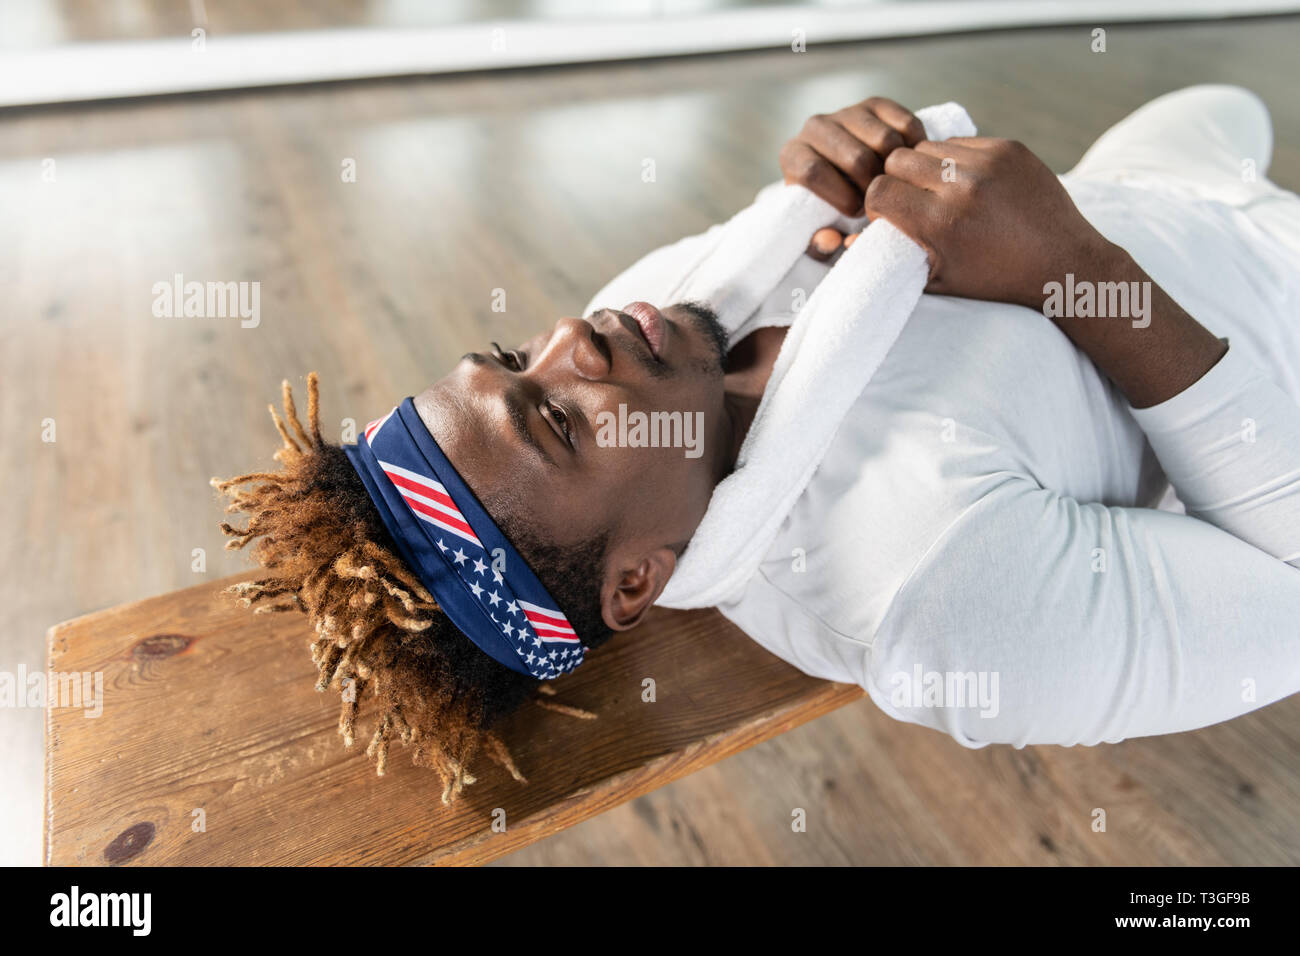 Tired good-looking guy with colorful bandanas lying on wooden seat - Stock Image